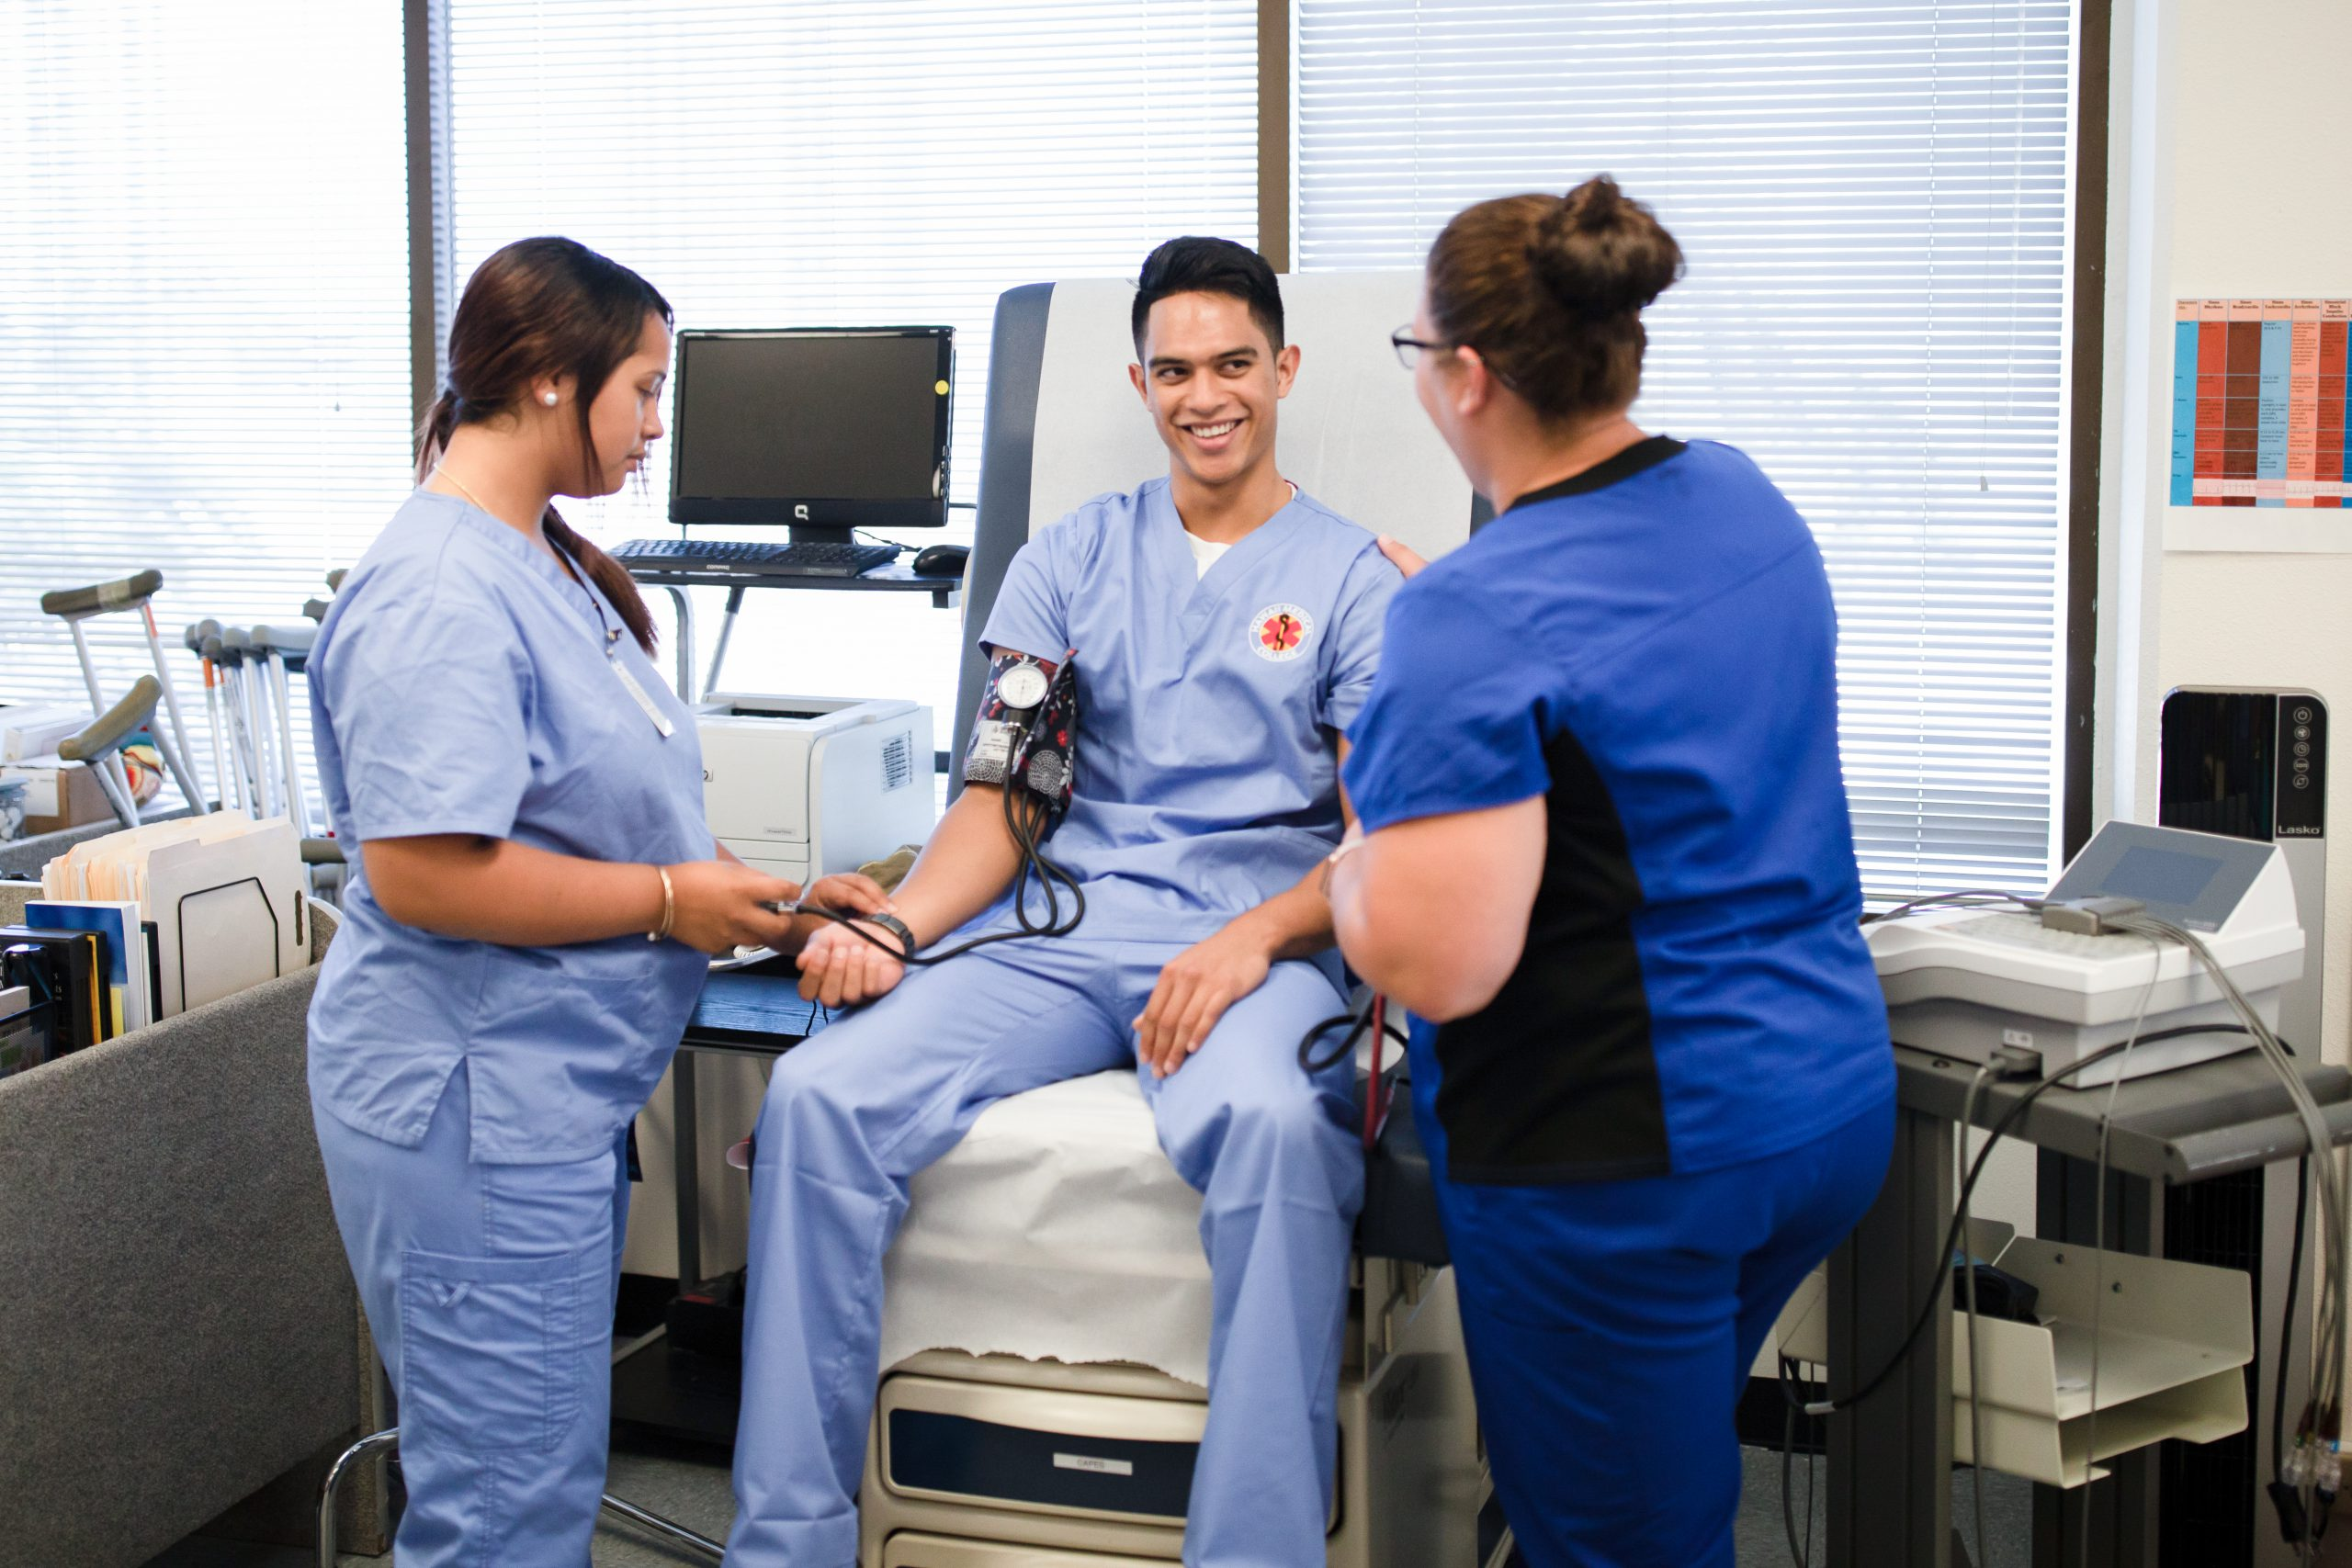 Hawaii Medical College Clinical Medical Assistant